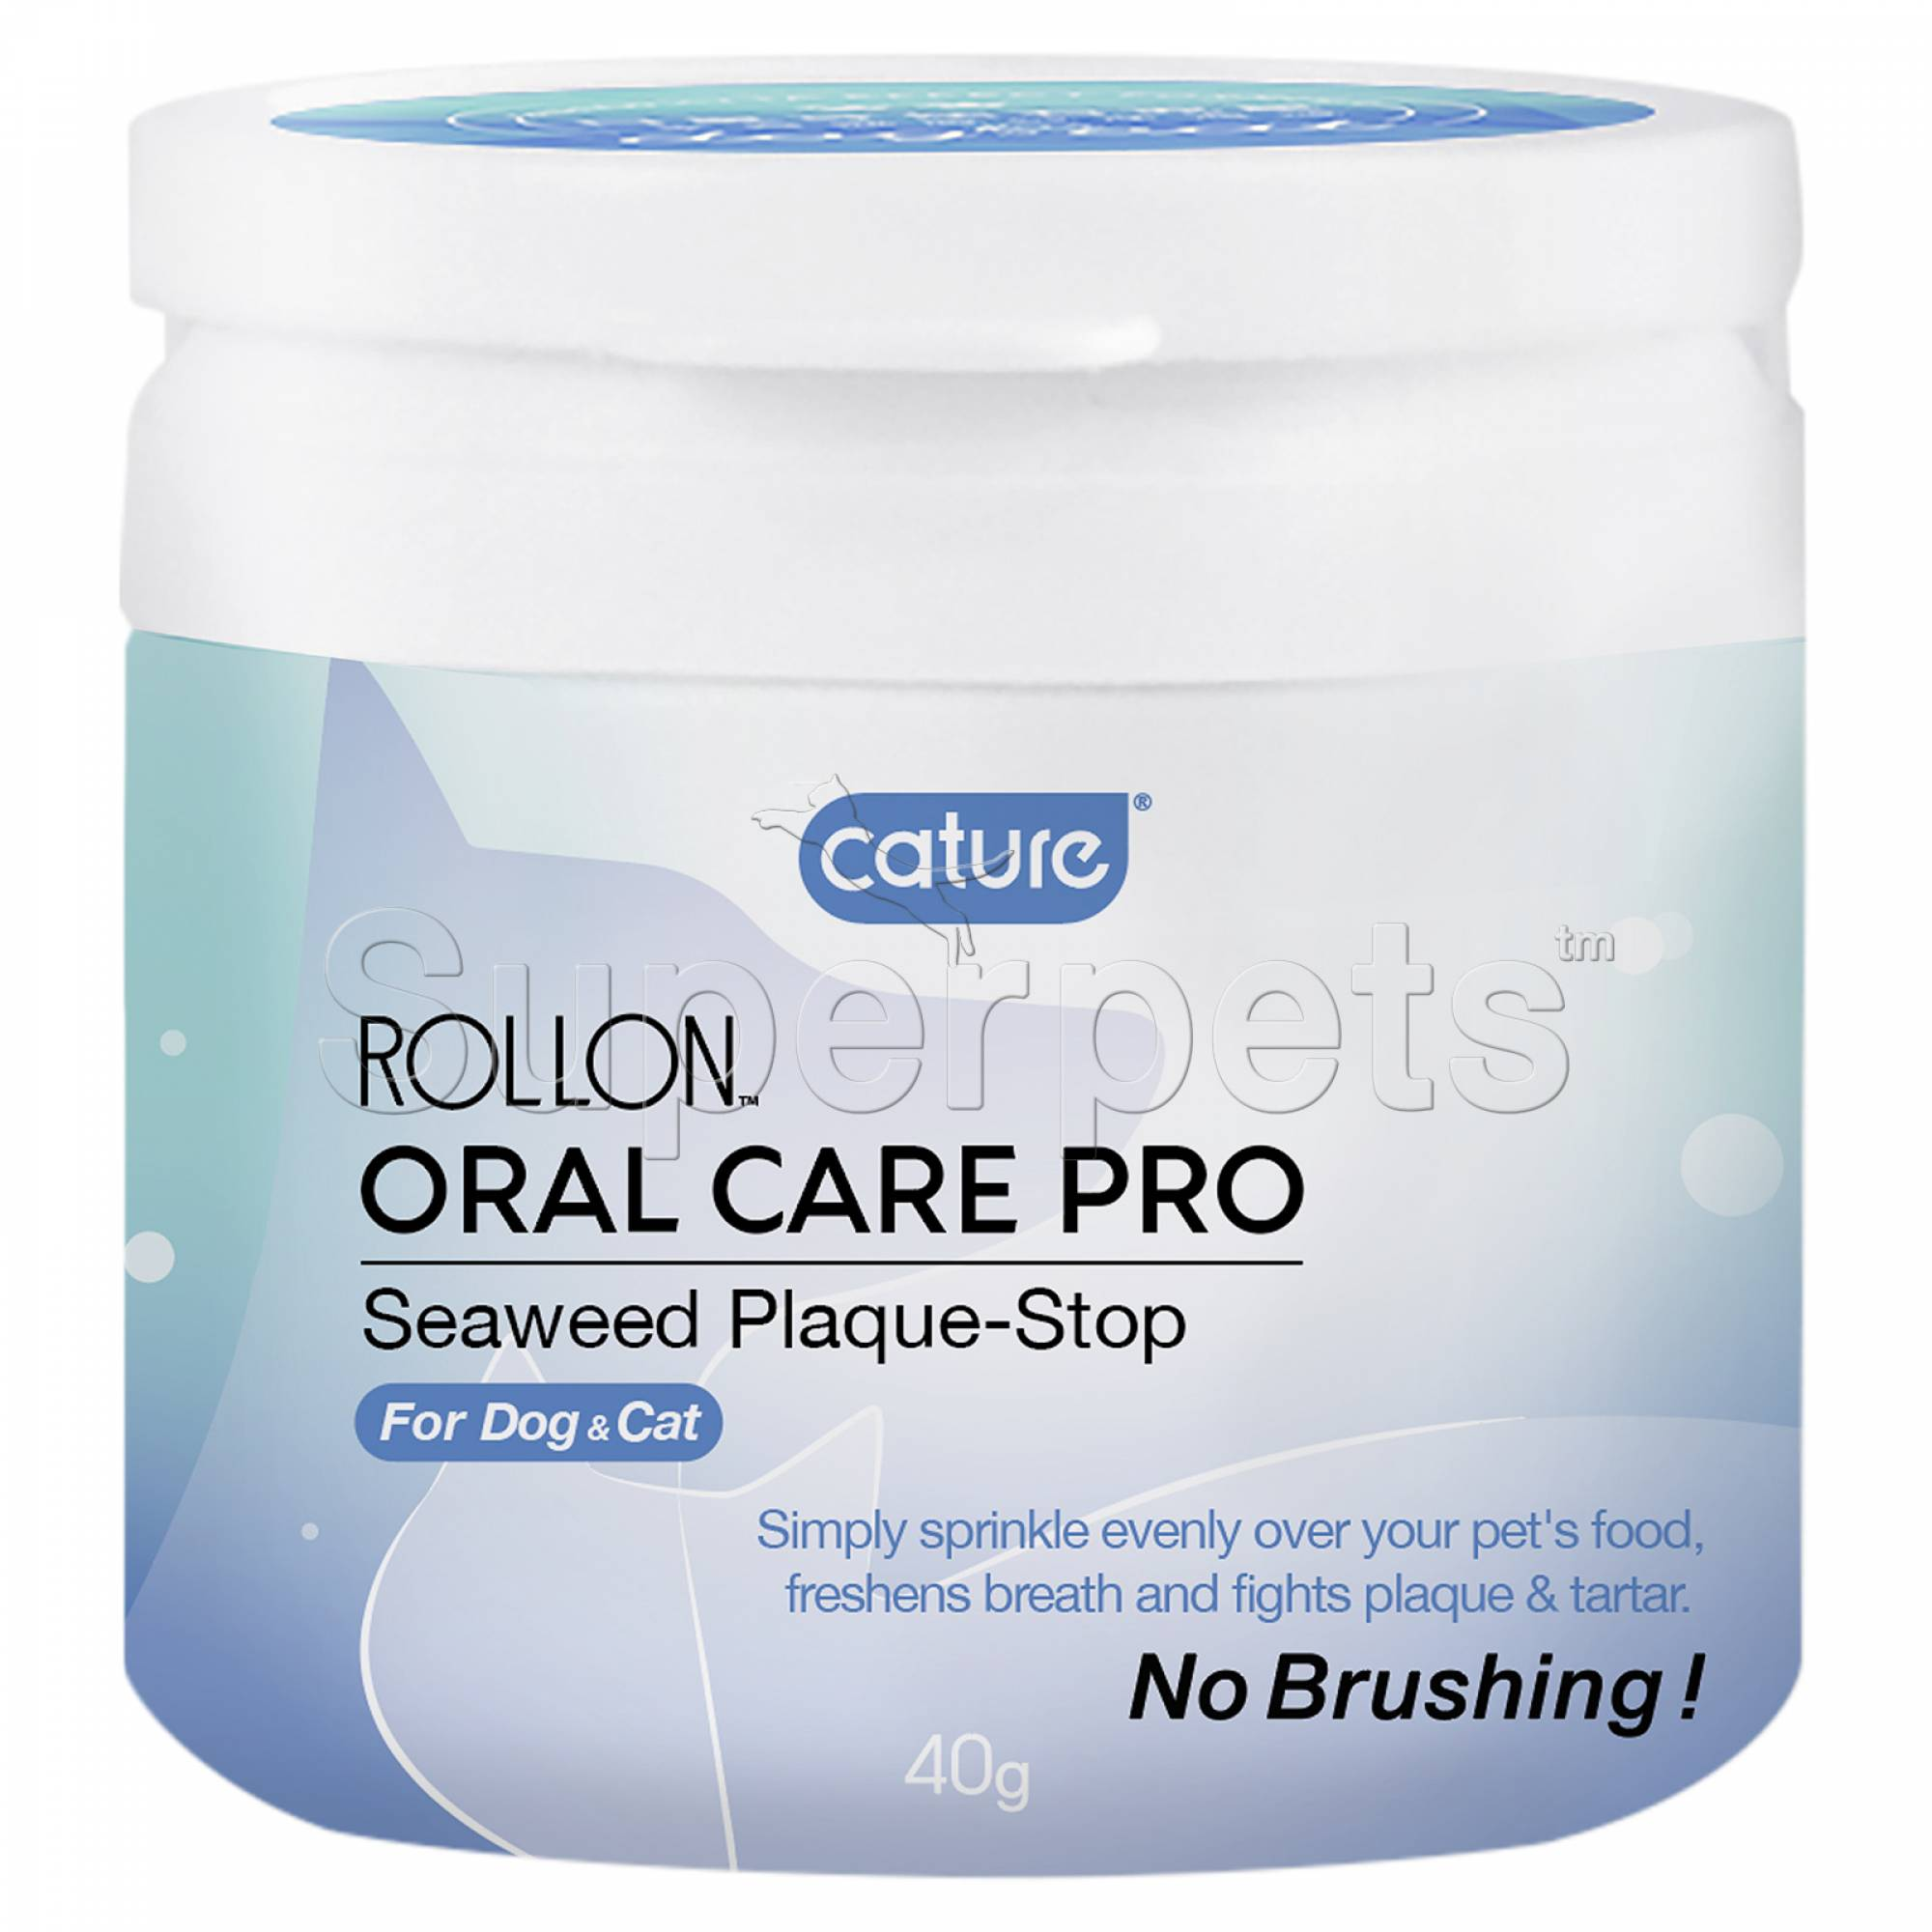 Cature Rollon Oral Care Pro Seaweed Plaque-Stop for Dog & Cat 40g (short expiry 14-Nov)